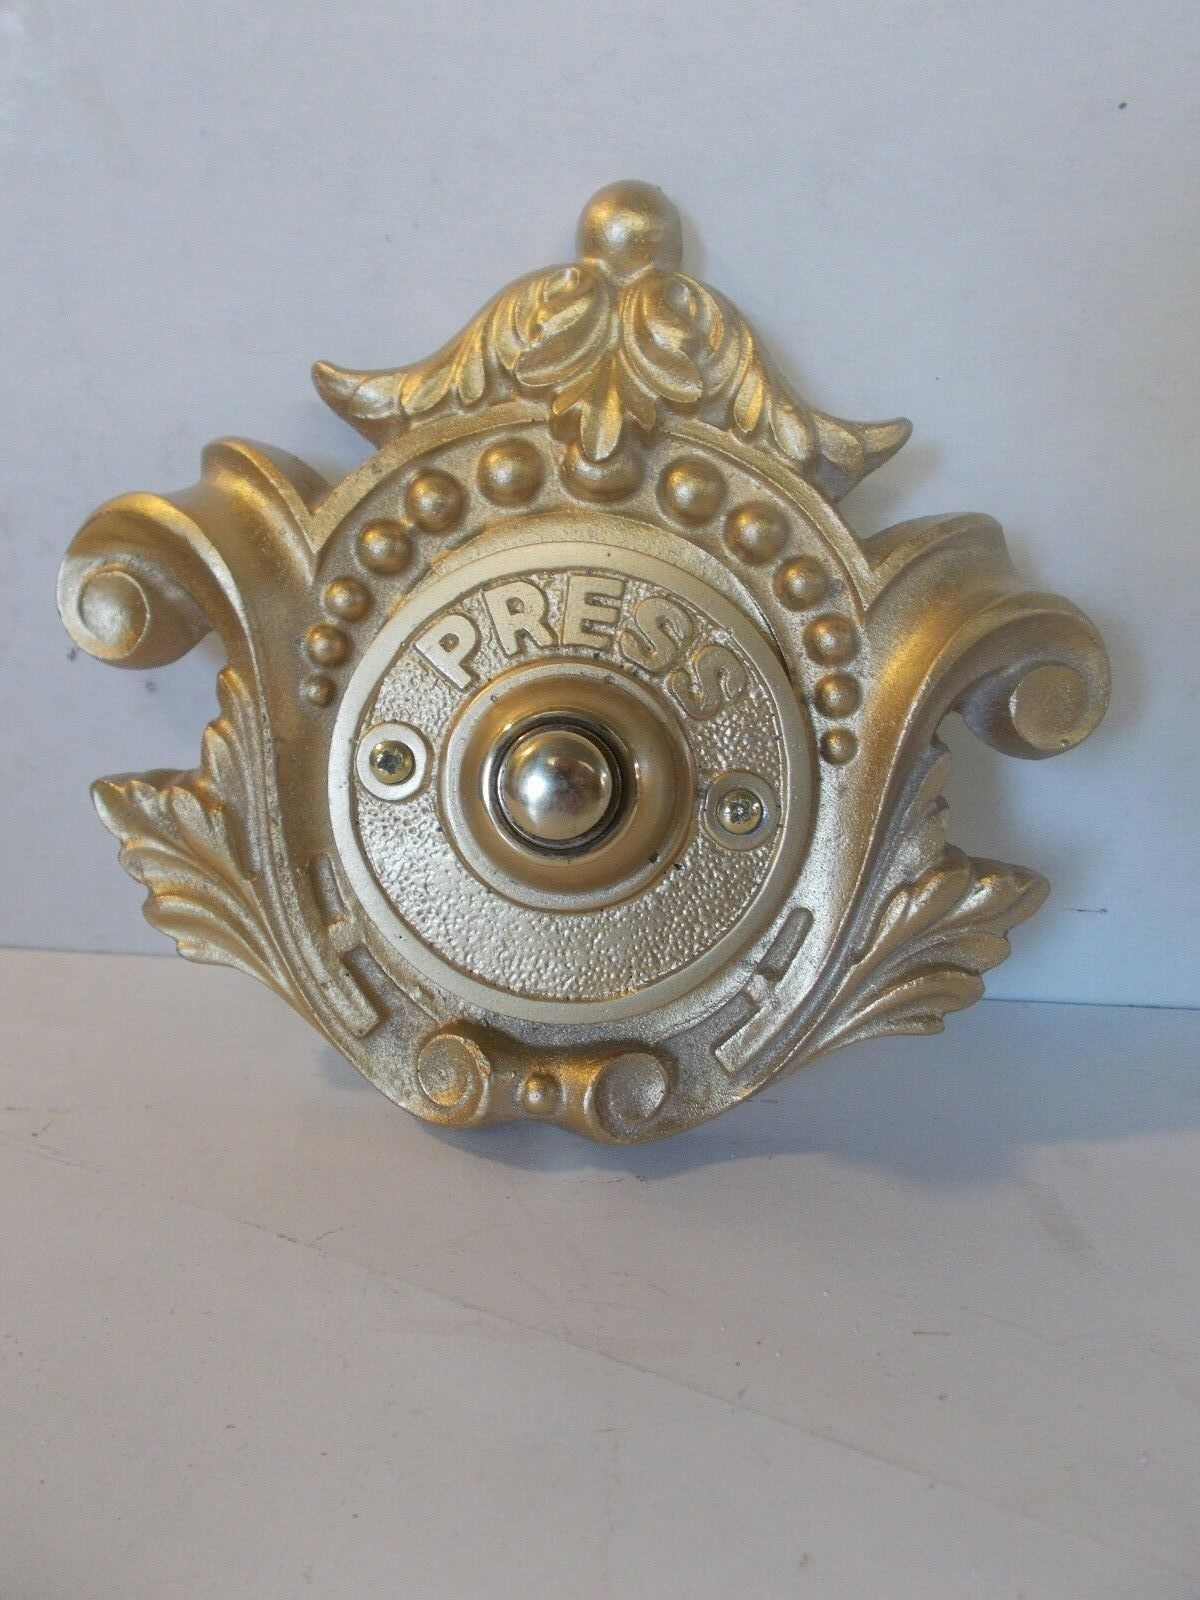 Ornate Looking Wirot Door Push Bell Resin Gold In Colour